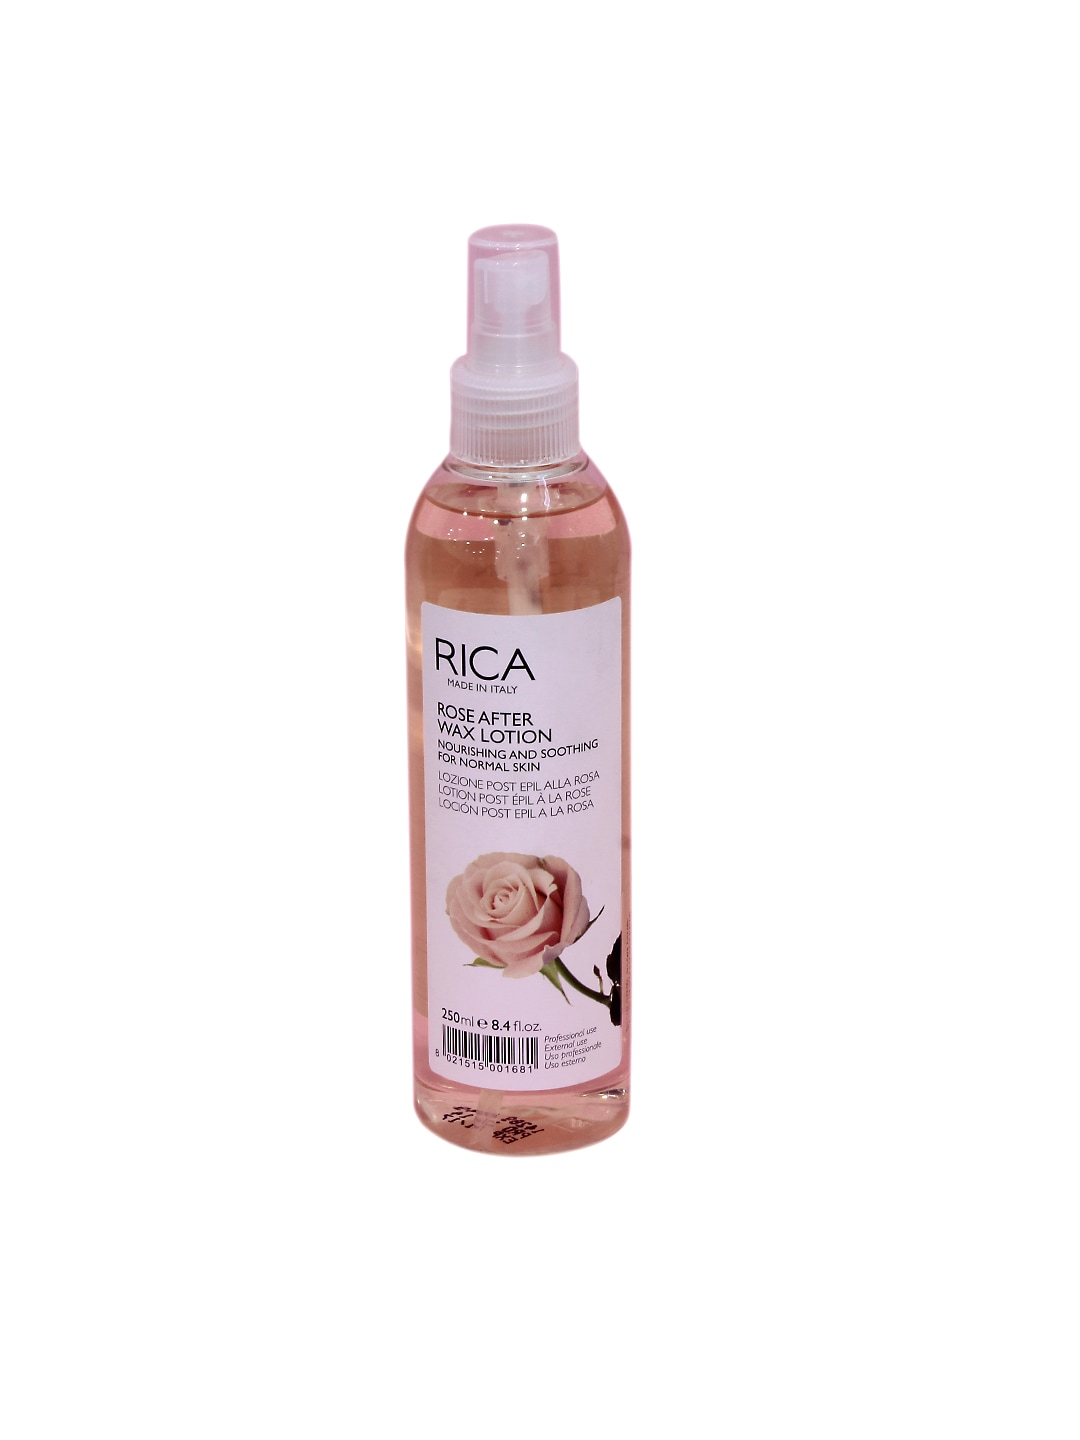 RICA Unisex Rose After Wax Lotion image